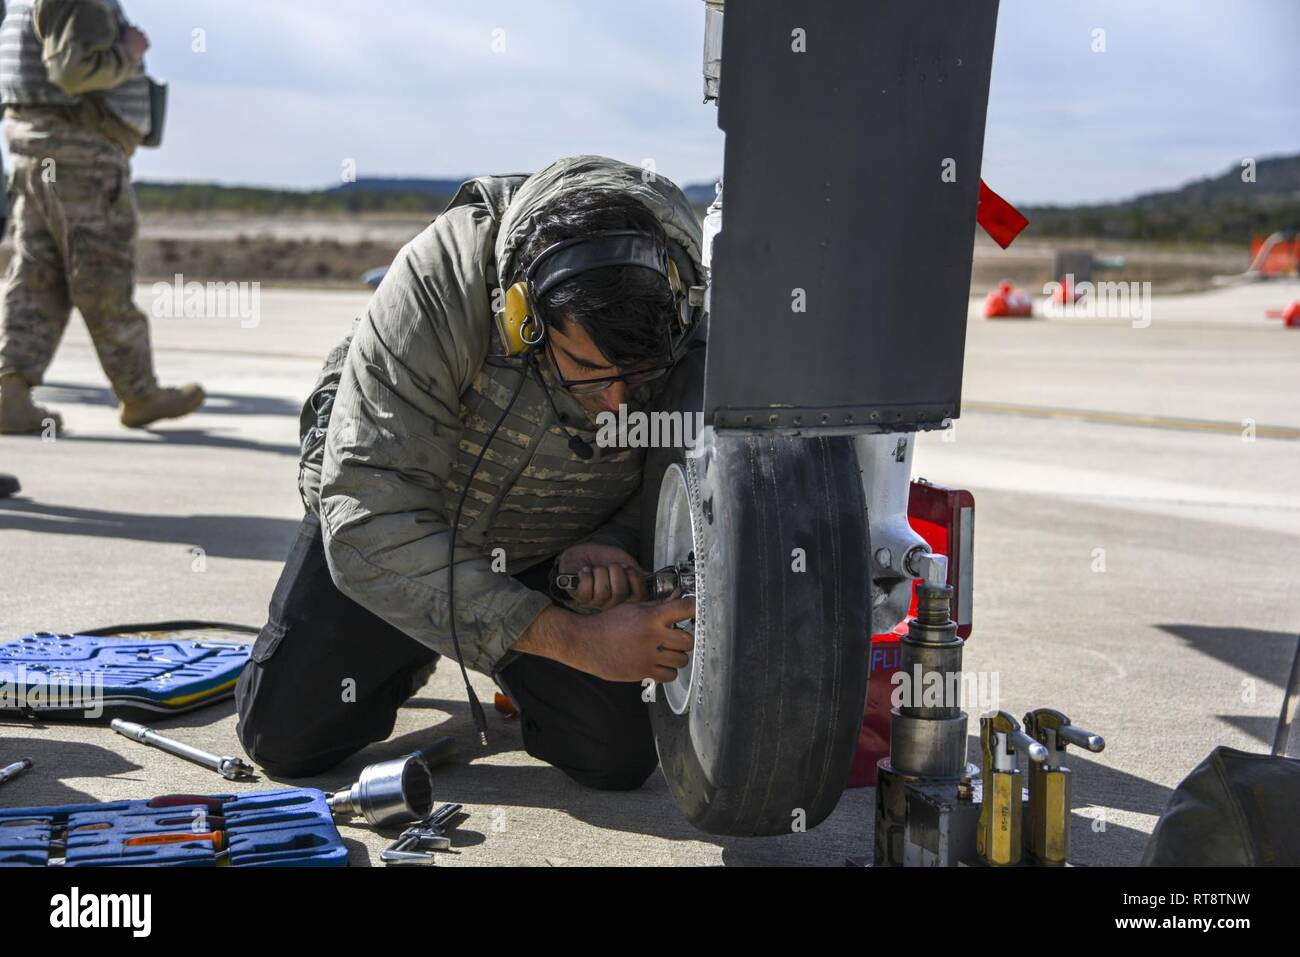 U.S. Air Force Staff Sgt. Anmoledeep Sandhu, 354th Fighter Squadron crew chief, changes the tire on an A-10 Thunderbolt II during operation Pegasus Forge Jan. 28, 2019. During Operation Pegasus Forge, the 355th Wing's dynamic forward adaptive basing team's mission was to wield rapid combat power from a position of advantage with minimal footprint. - Stock Image